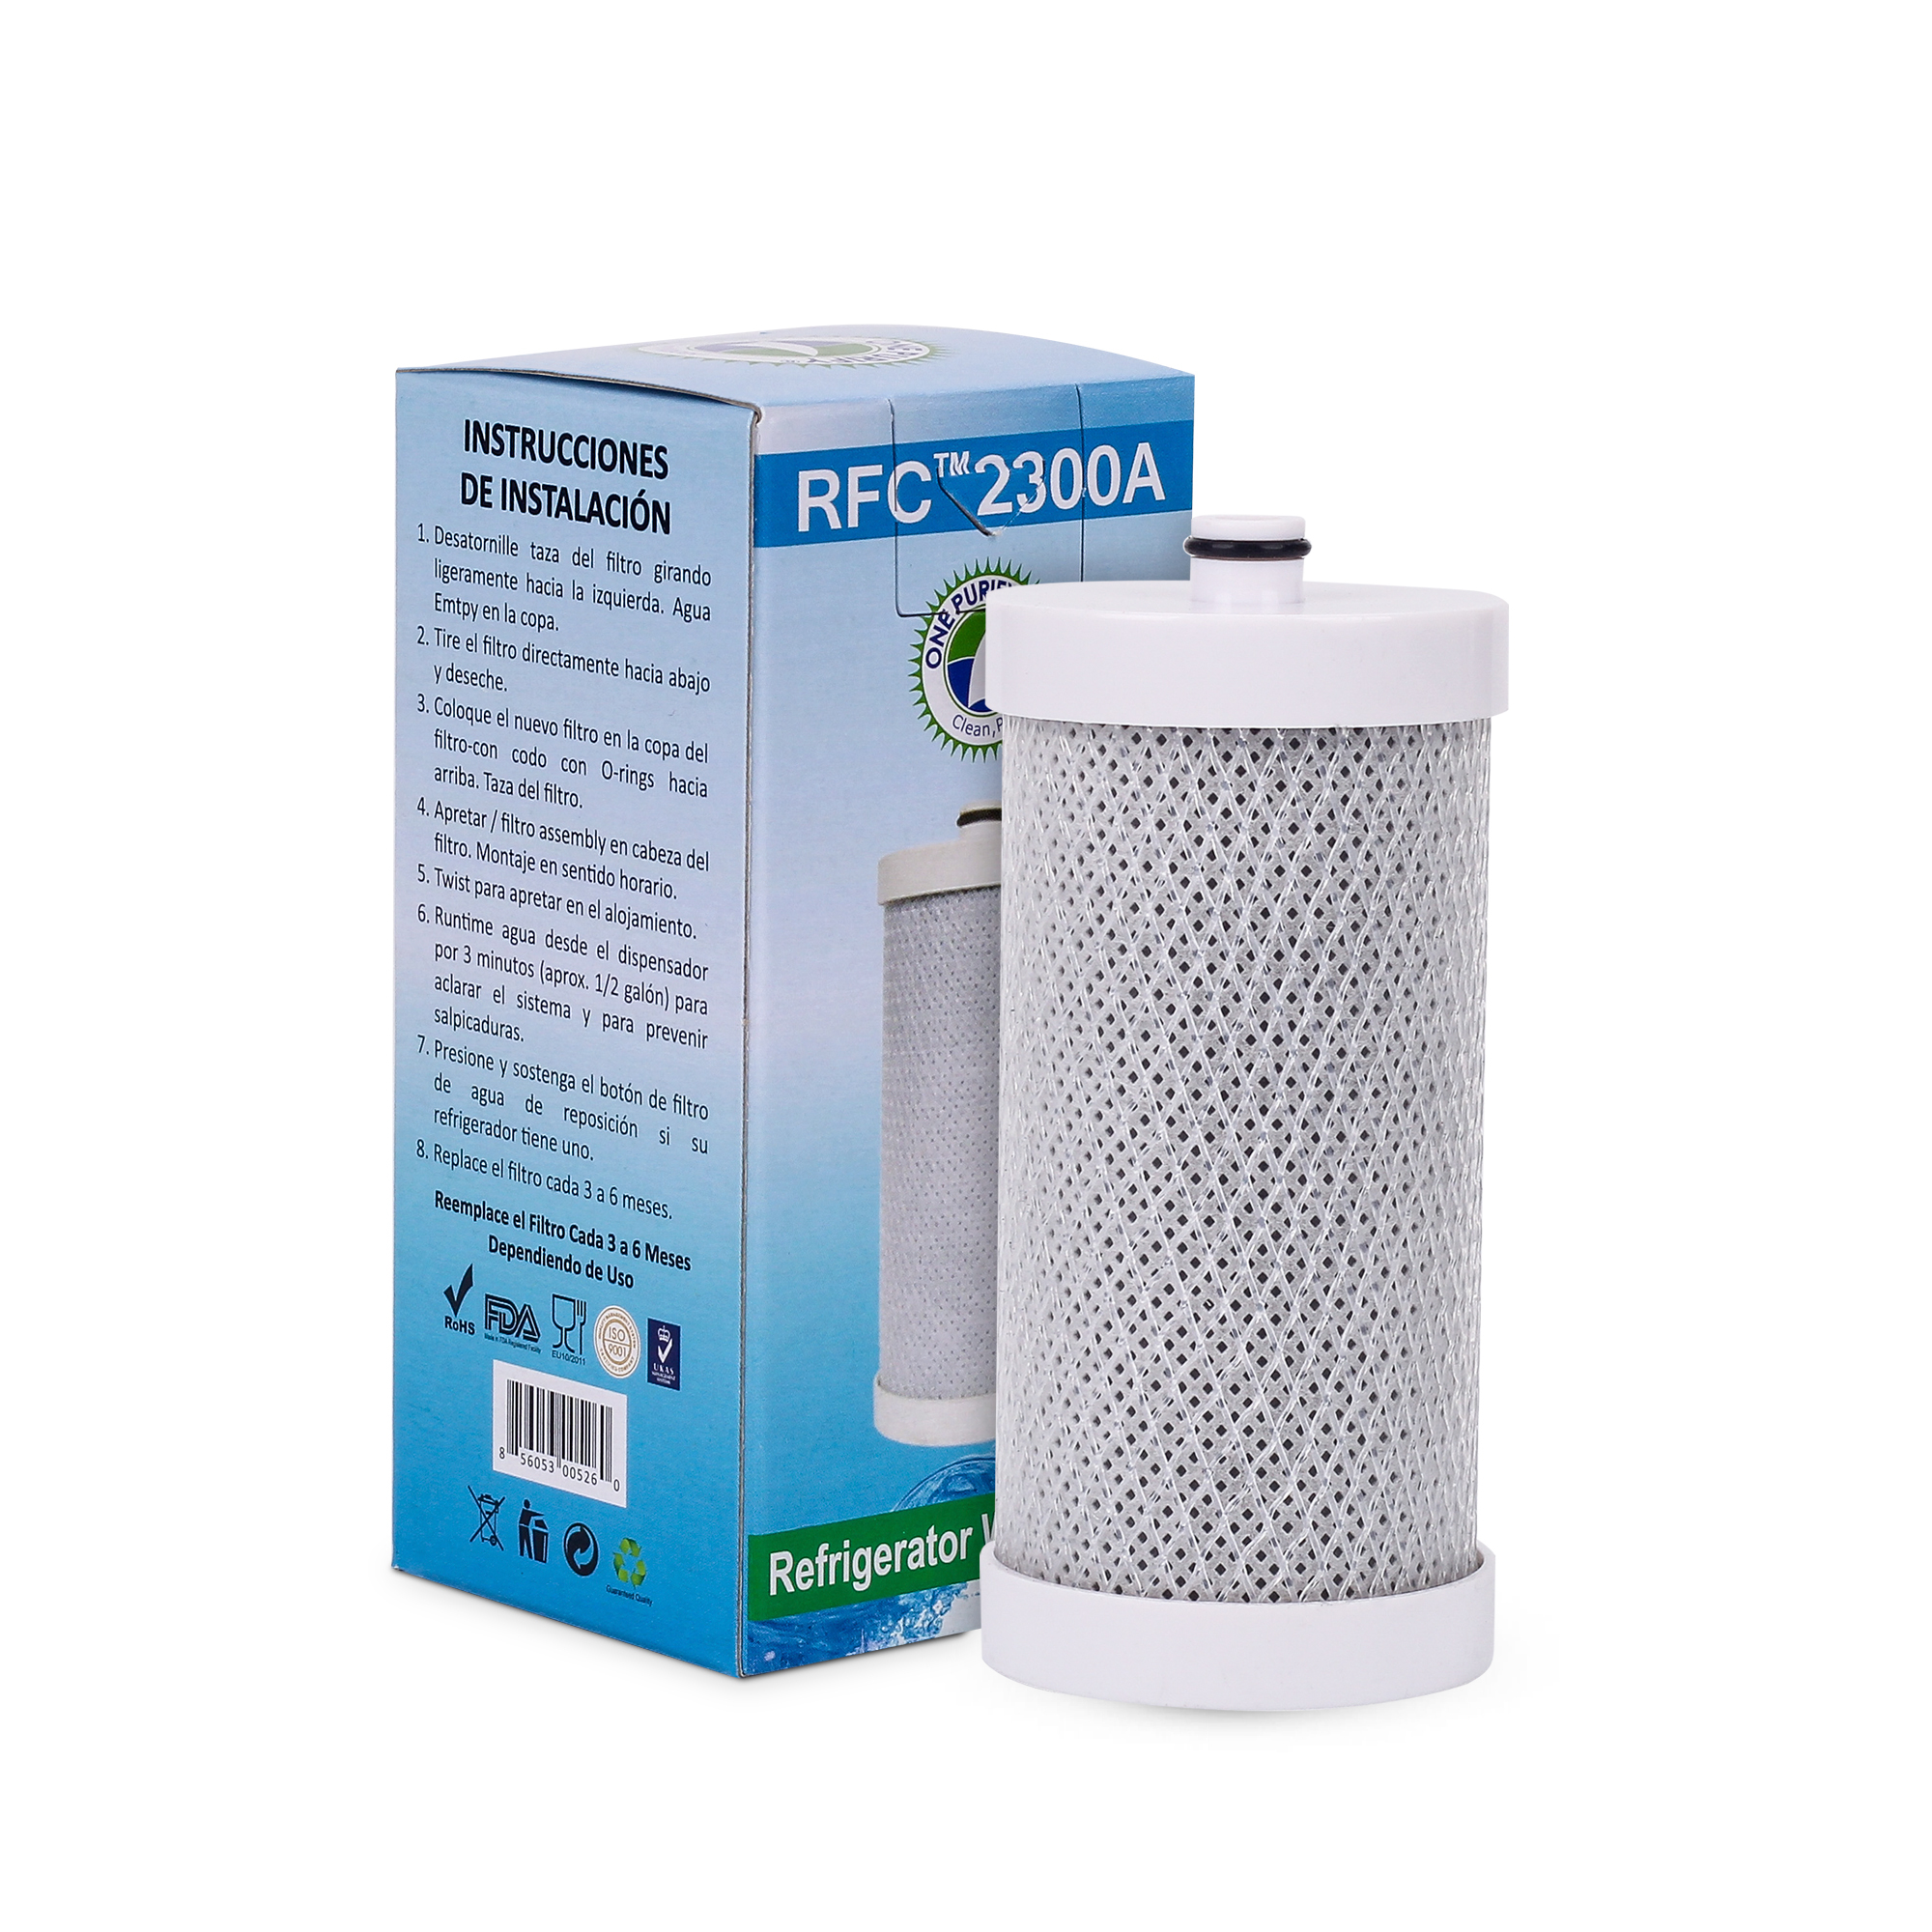 OnePurify RFC2300A Replacement for PH21600 Refrigerator Water Filters